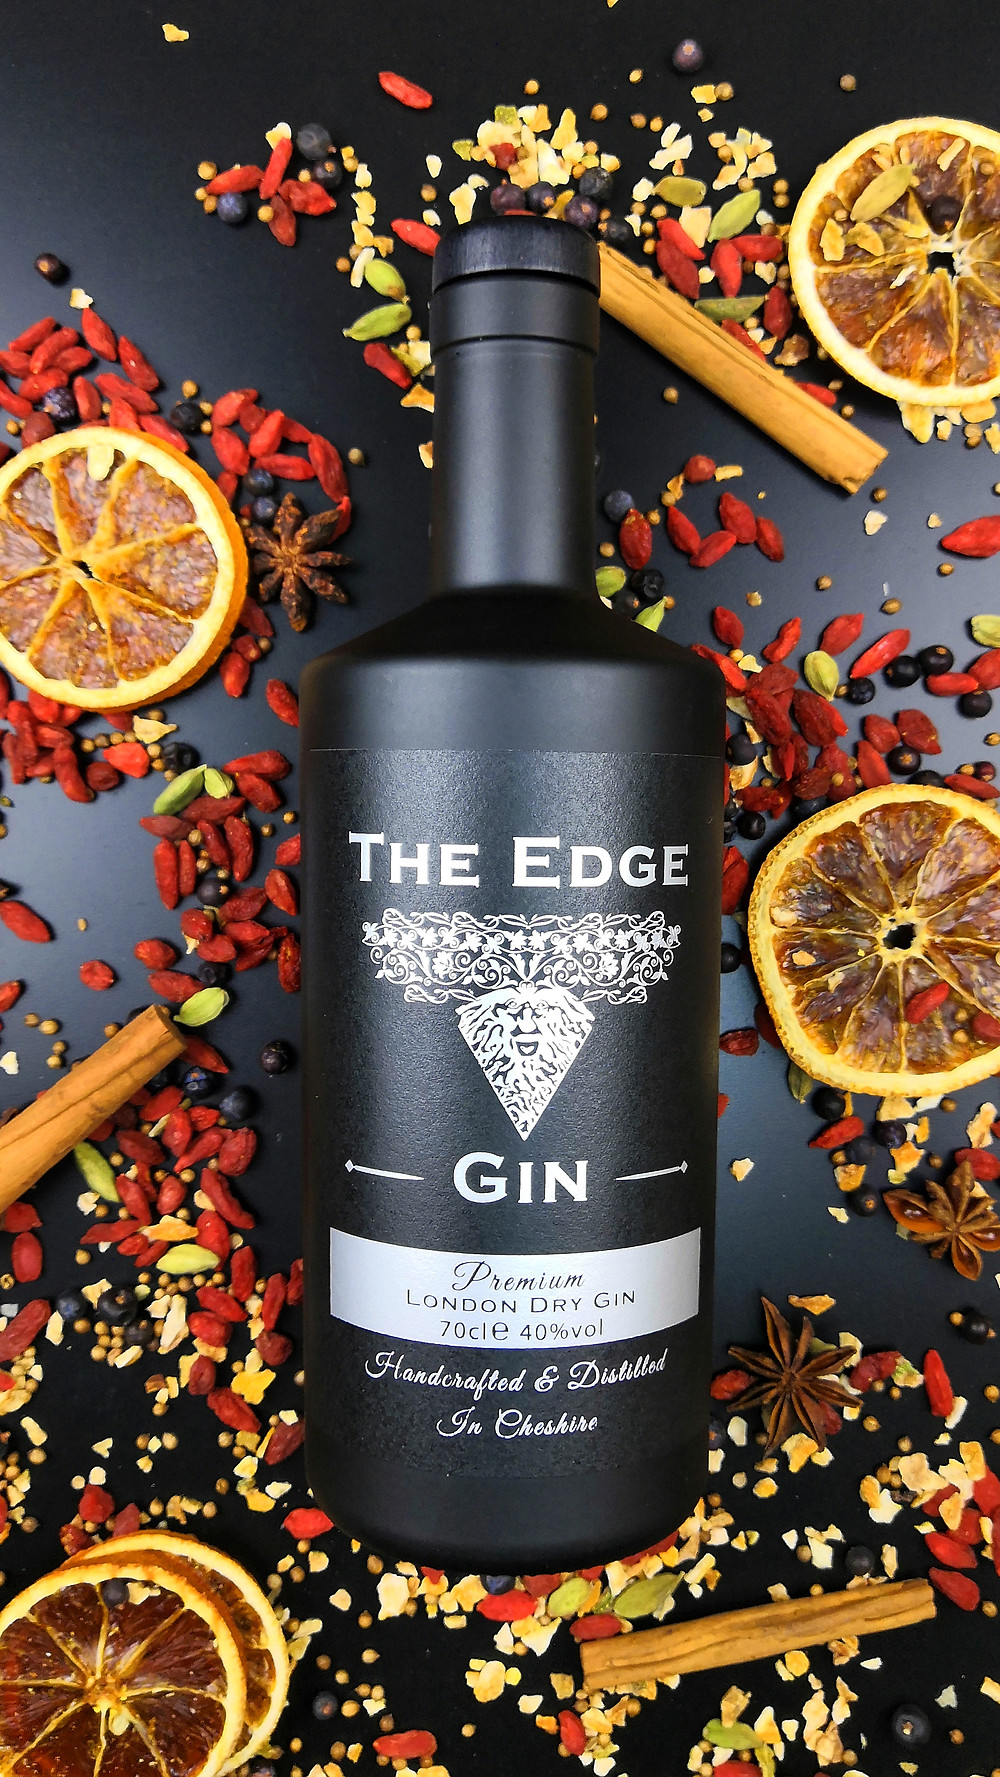 The Edge Gin - Contemporary London Dry